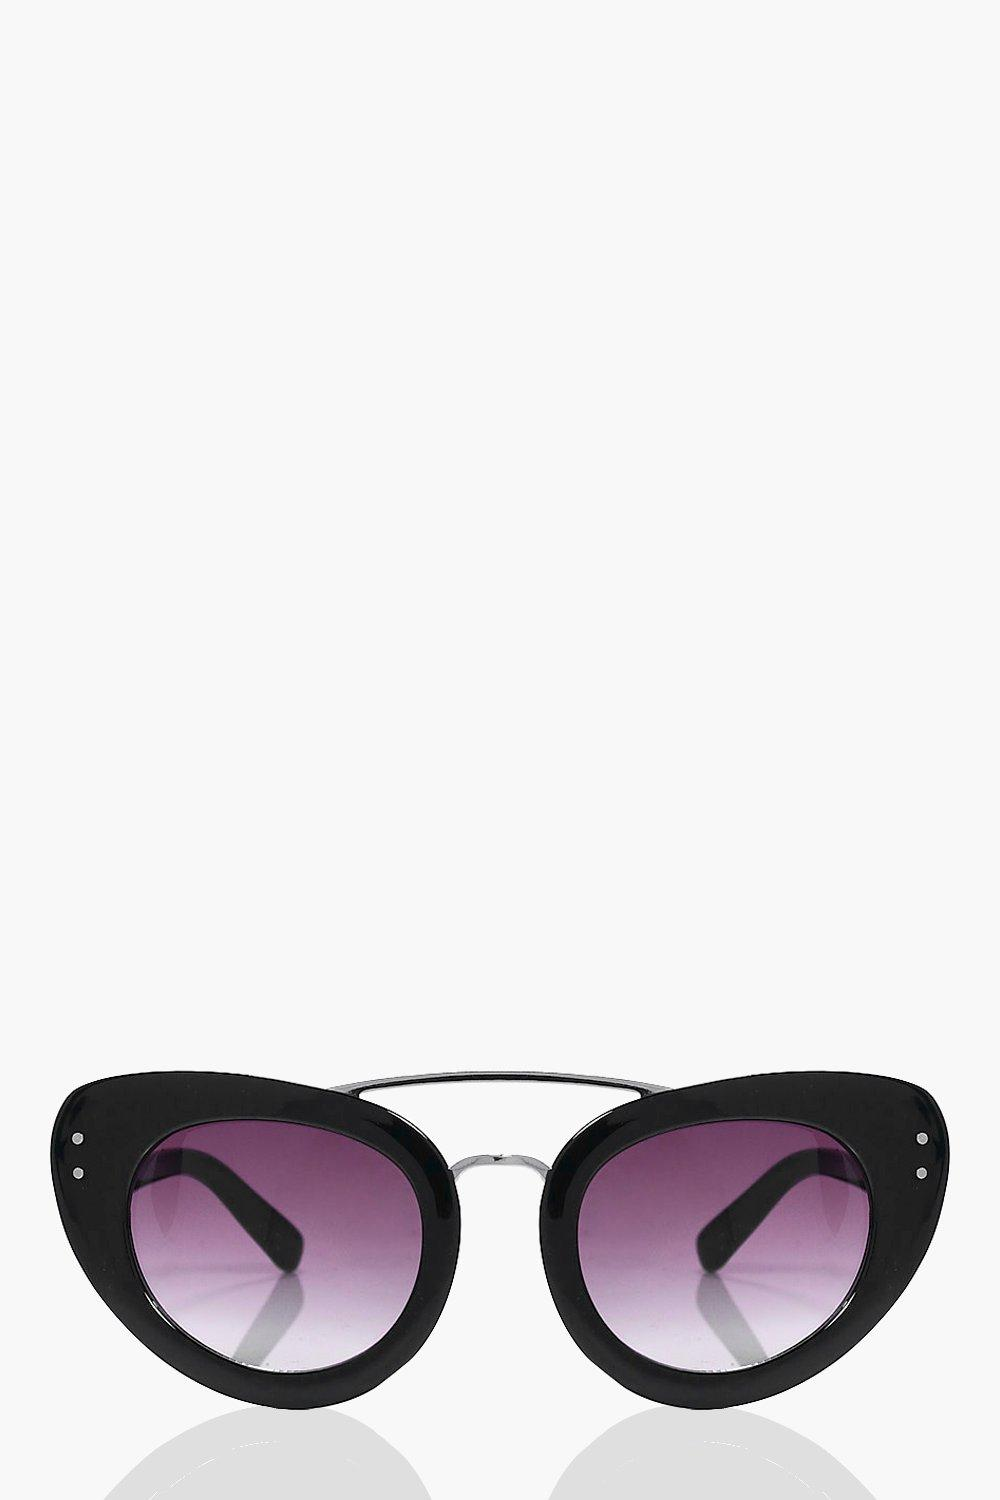 Isabelle Black Brow Bar Cat Eye Sunglasses